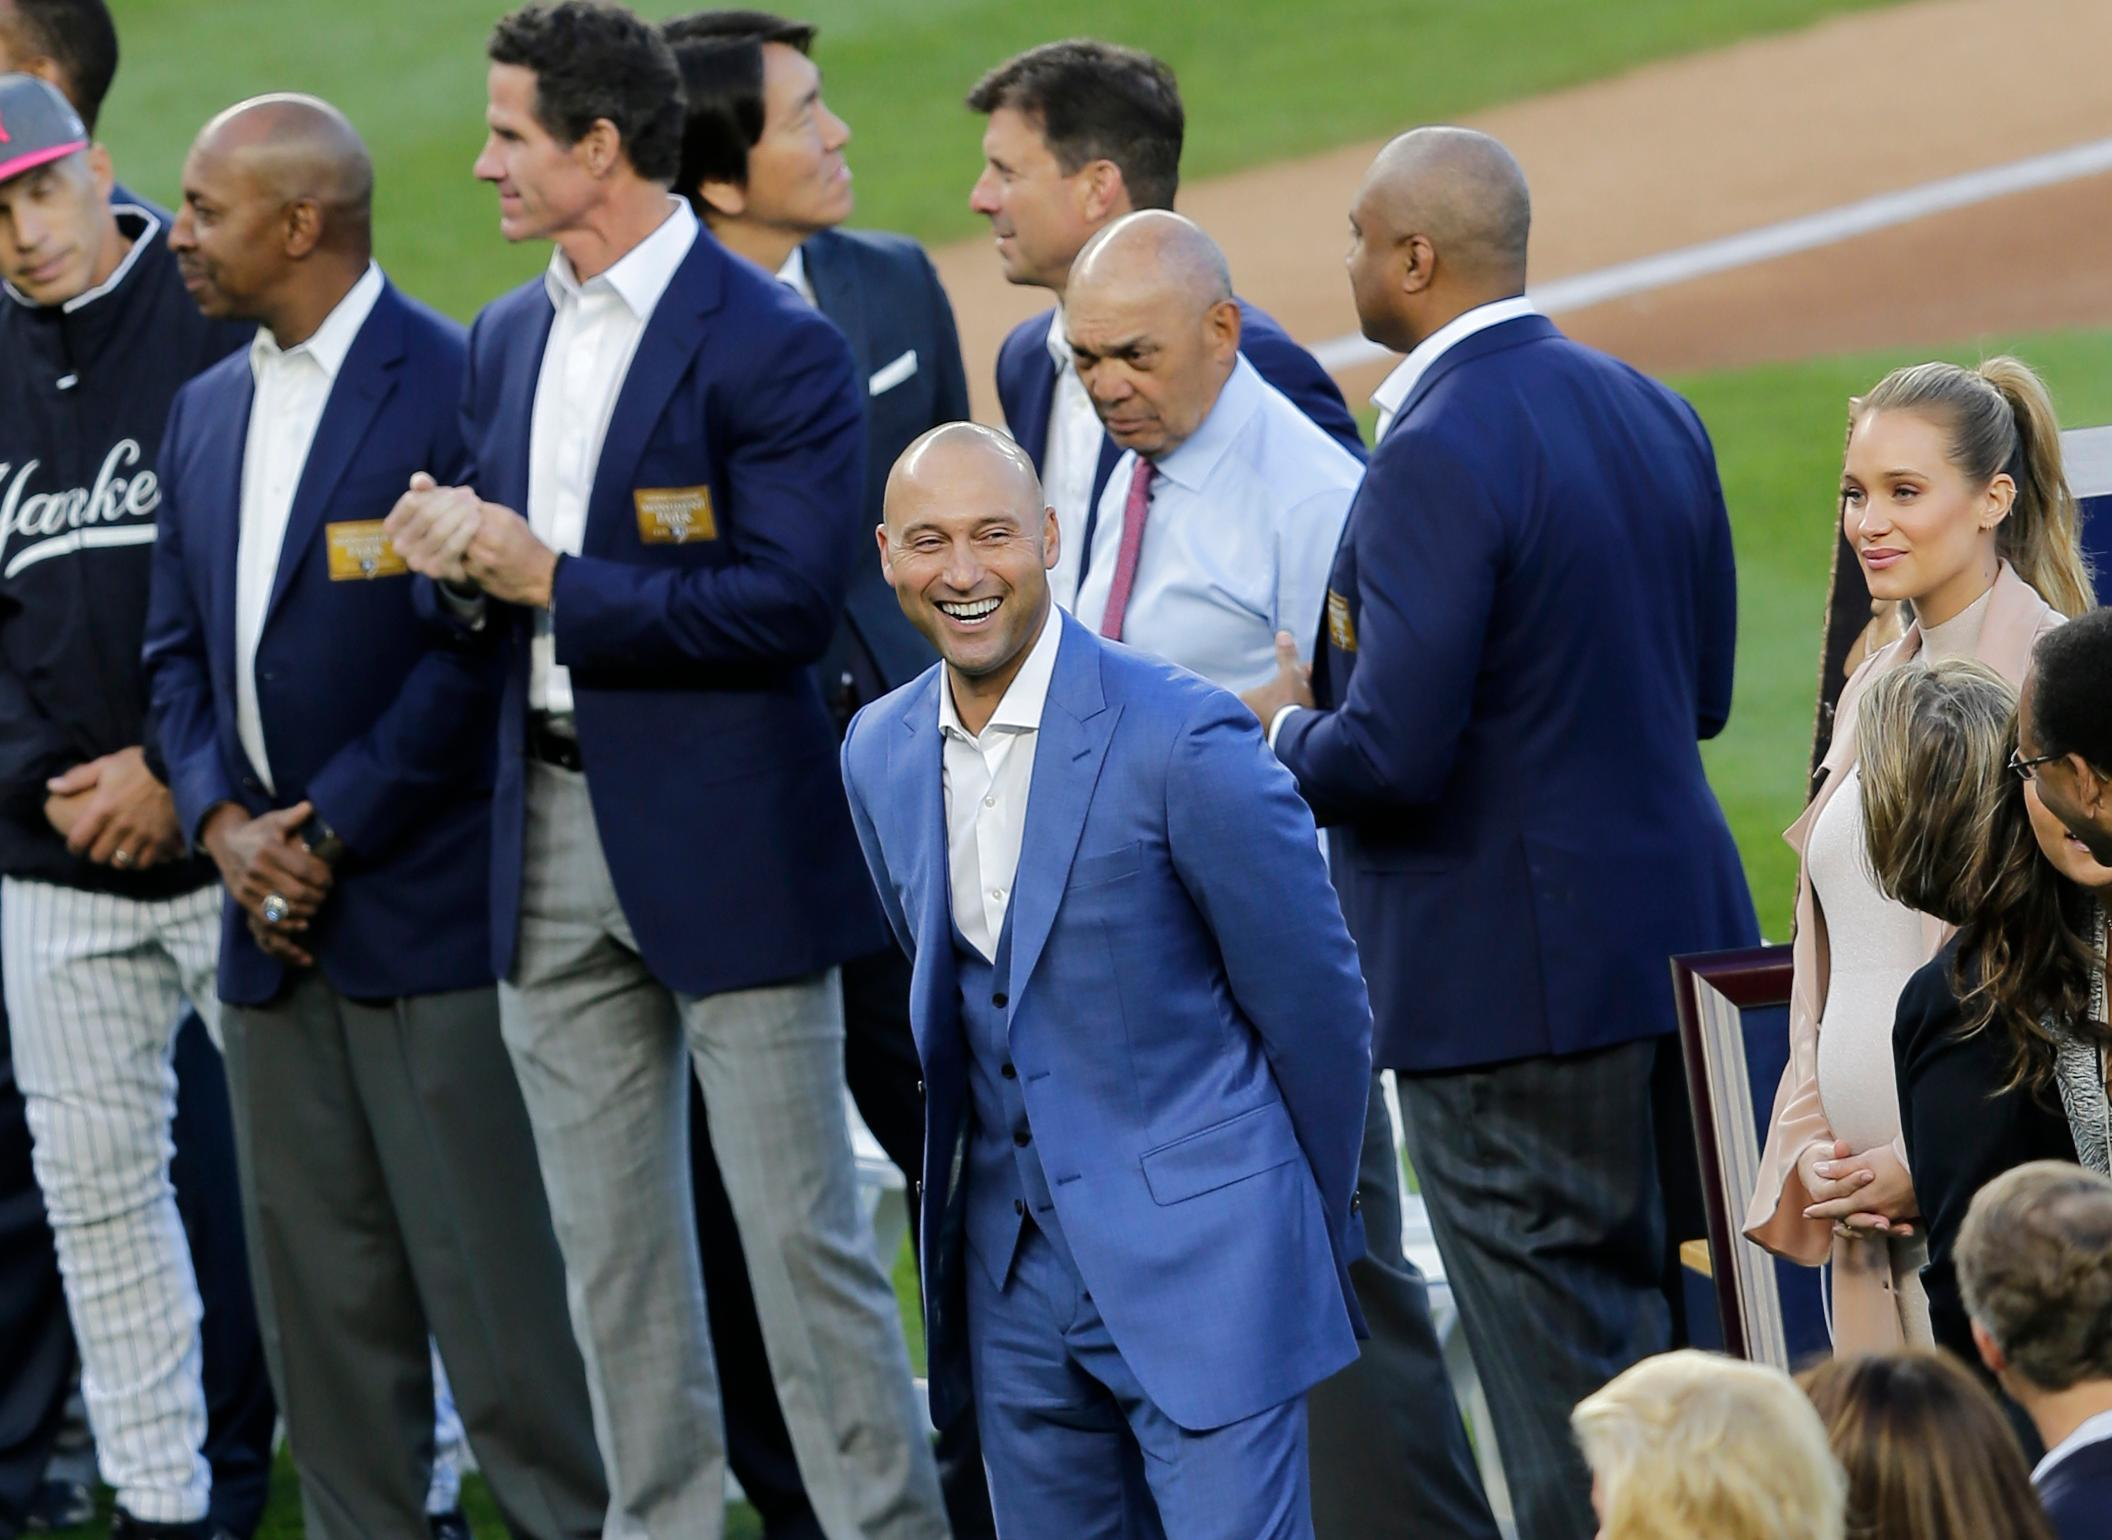 Former New York Yankees' Derek Jeter smiles during a ceremony retiring his number at Yankee Stadium, Sunday, May 14, 2017, in New York. (AP Photo/Seth Wenig)